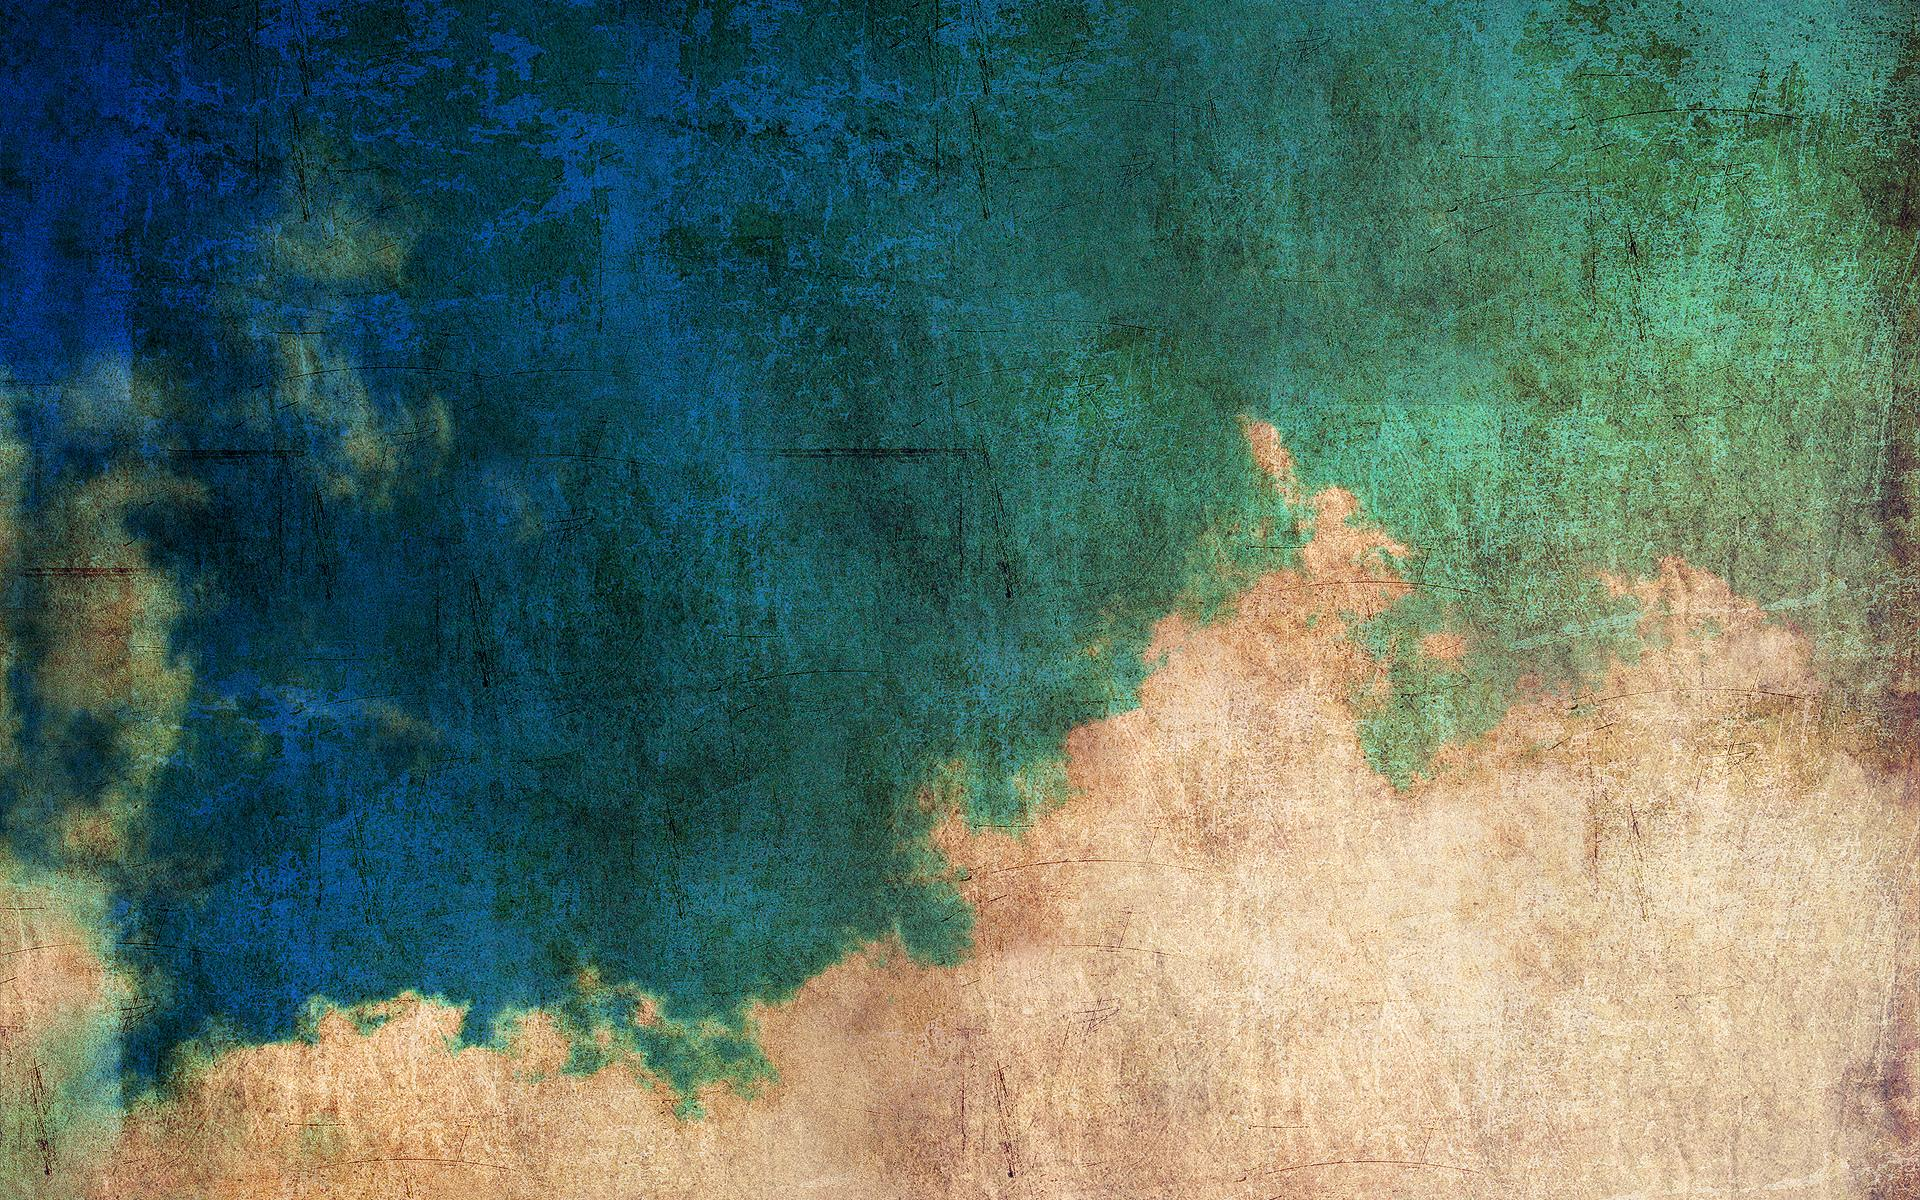 Texture Artistic wallpapers HD quality